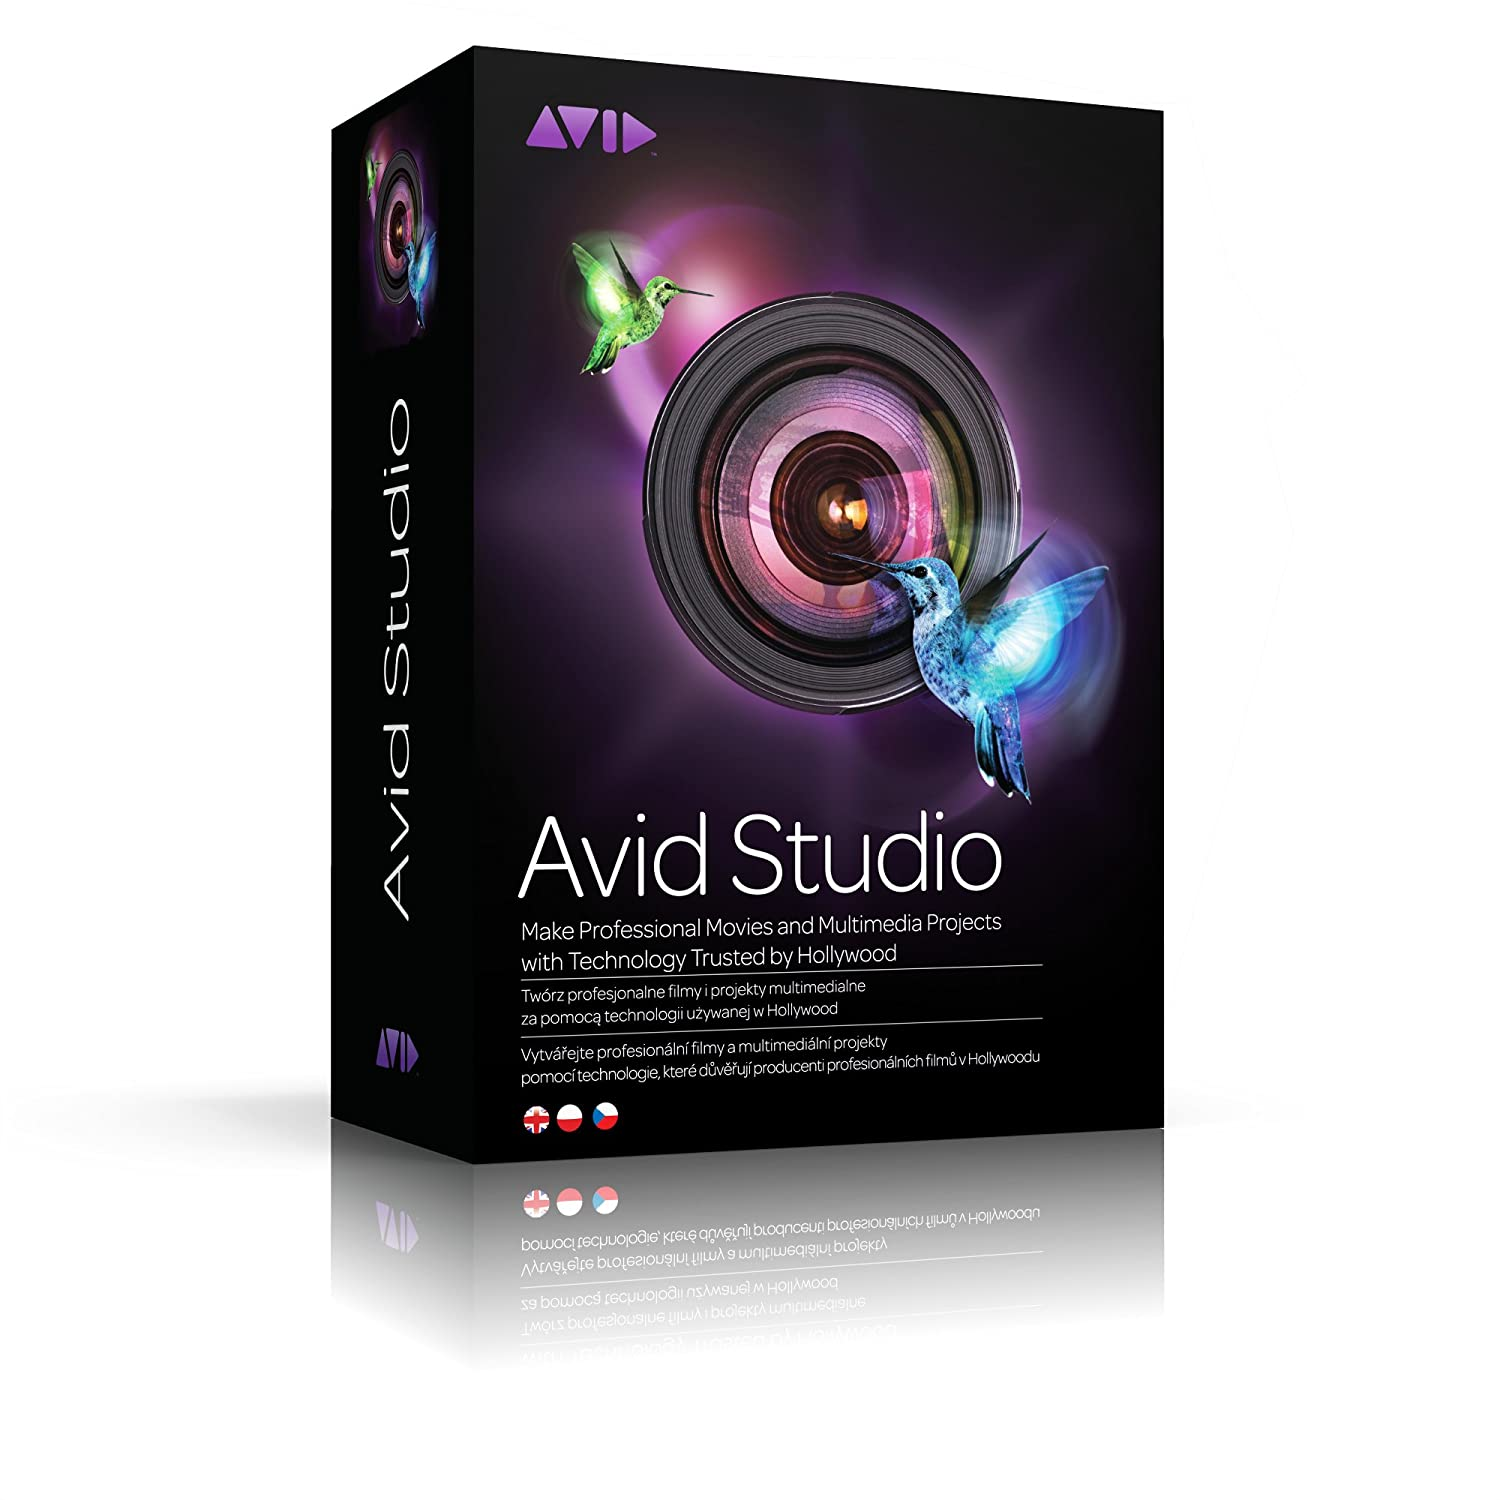 Xpress Studio Universal Media Kit Avid Xpress Studio HD Software